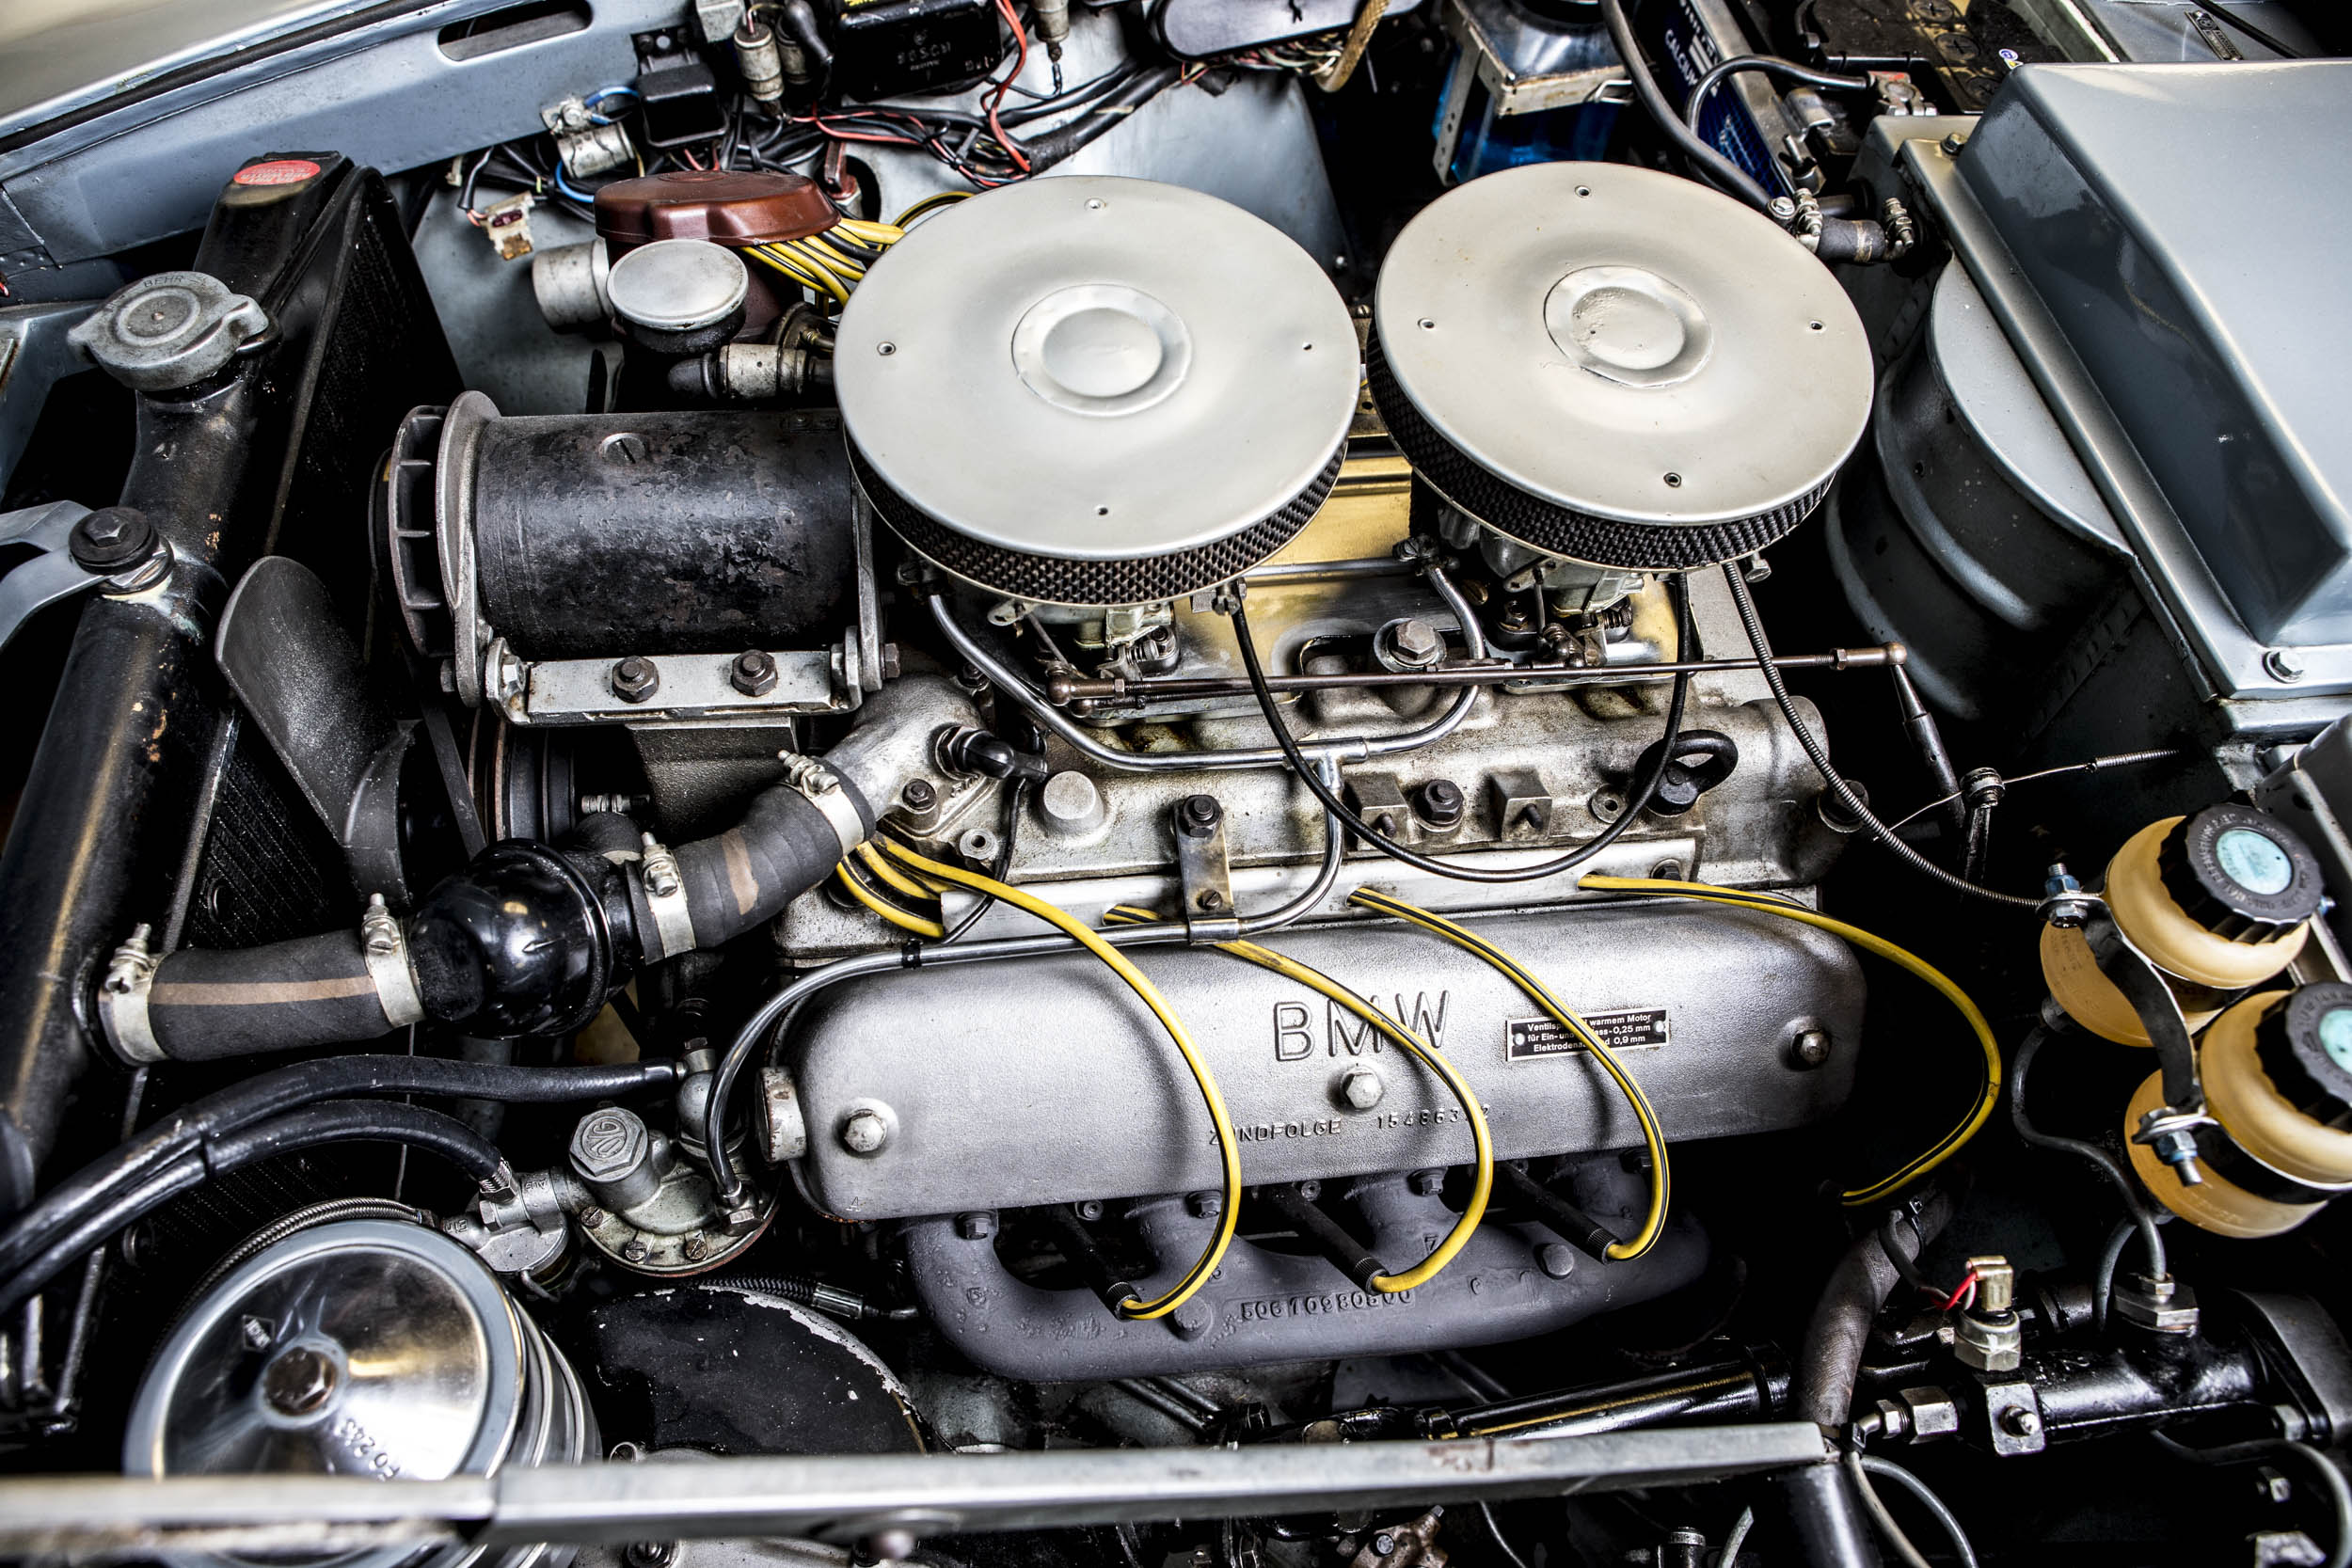 John Surtees' 1957 BMW 507 engine